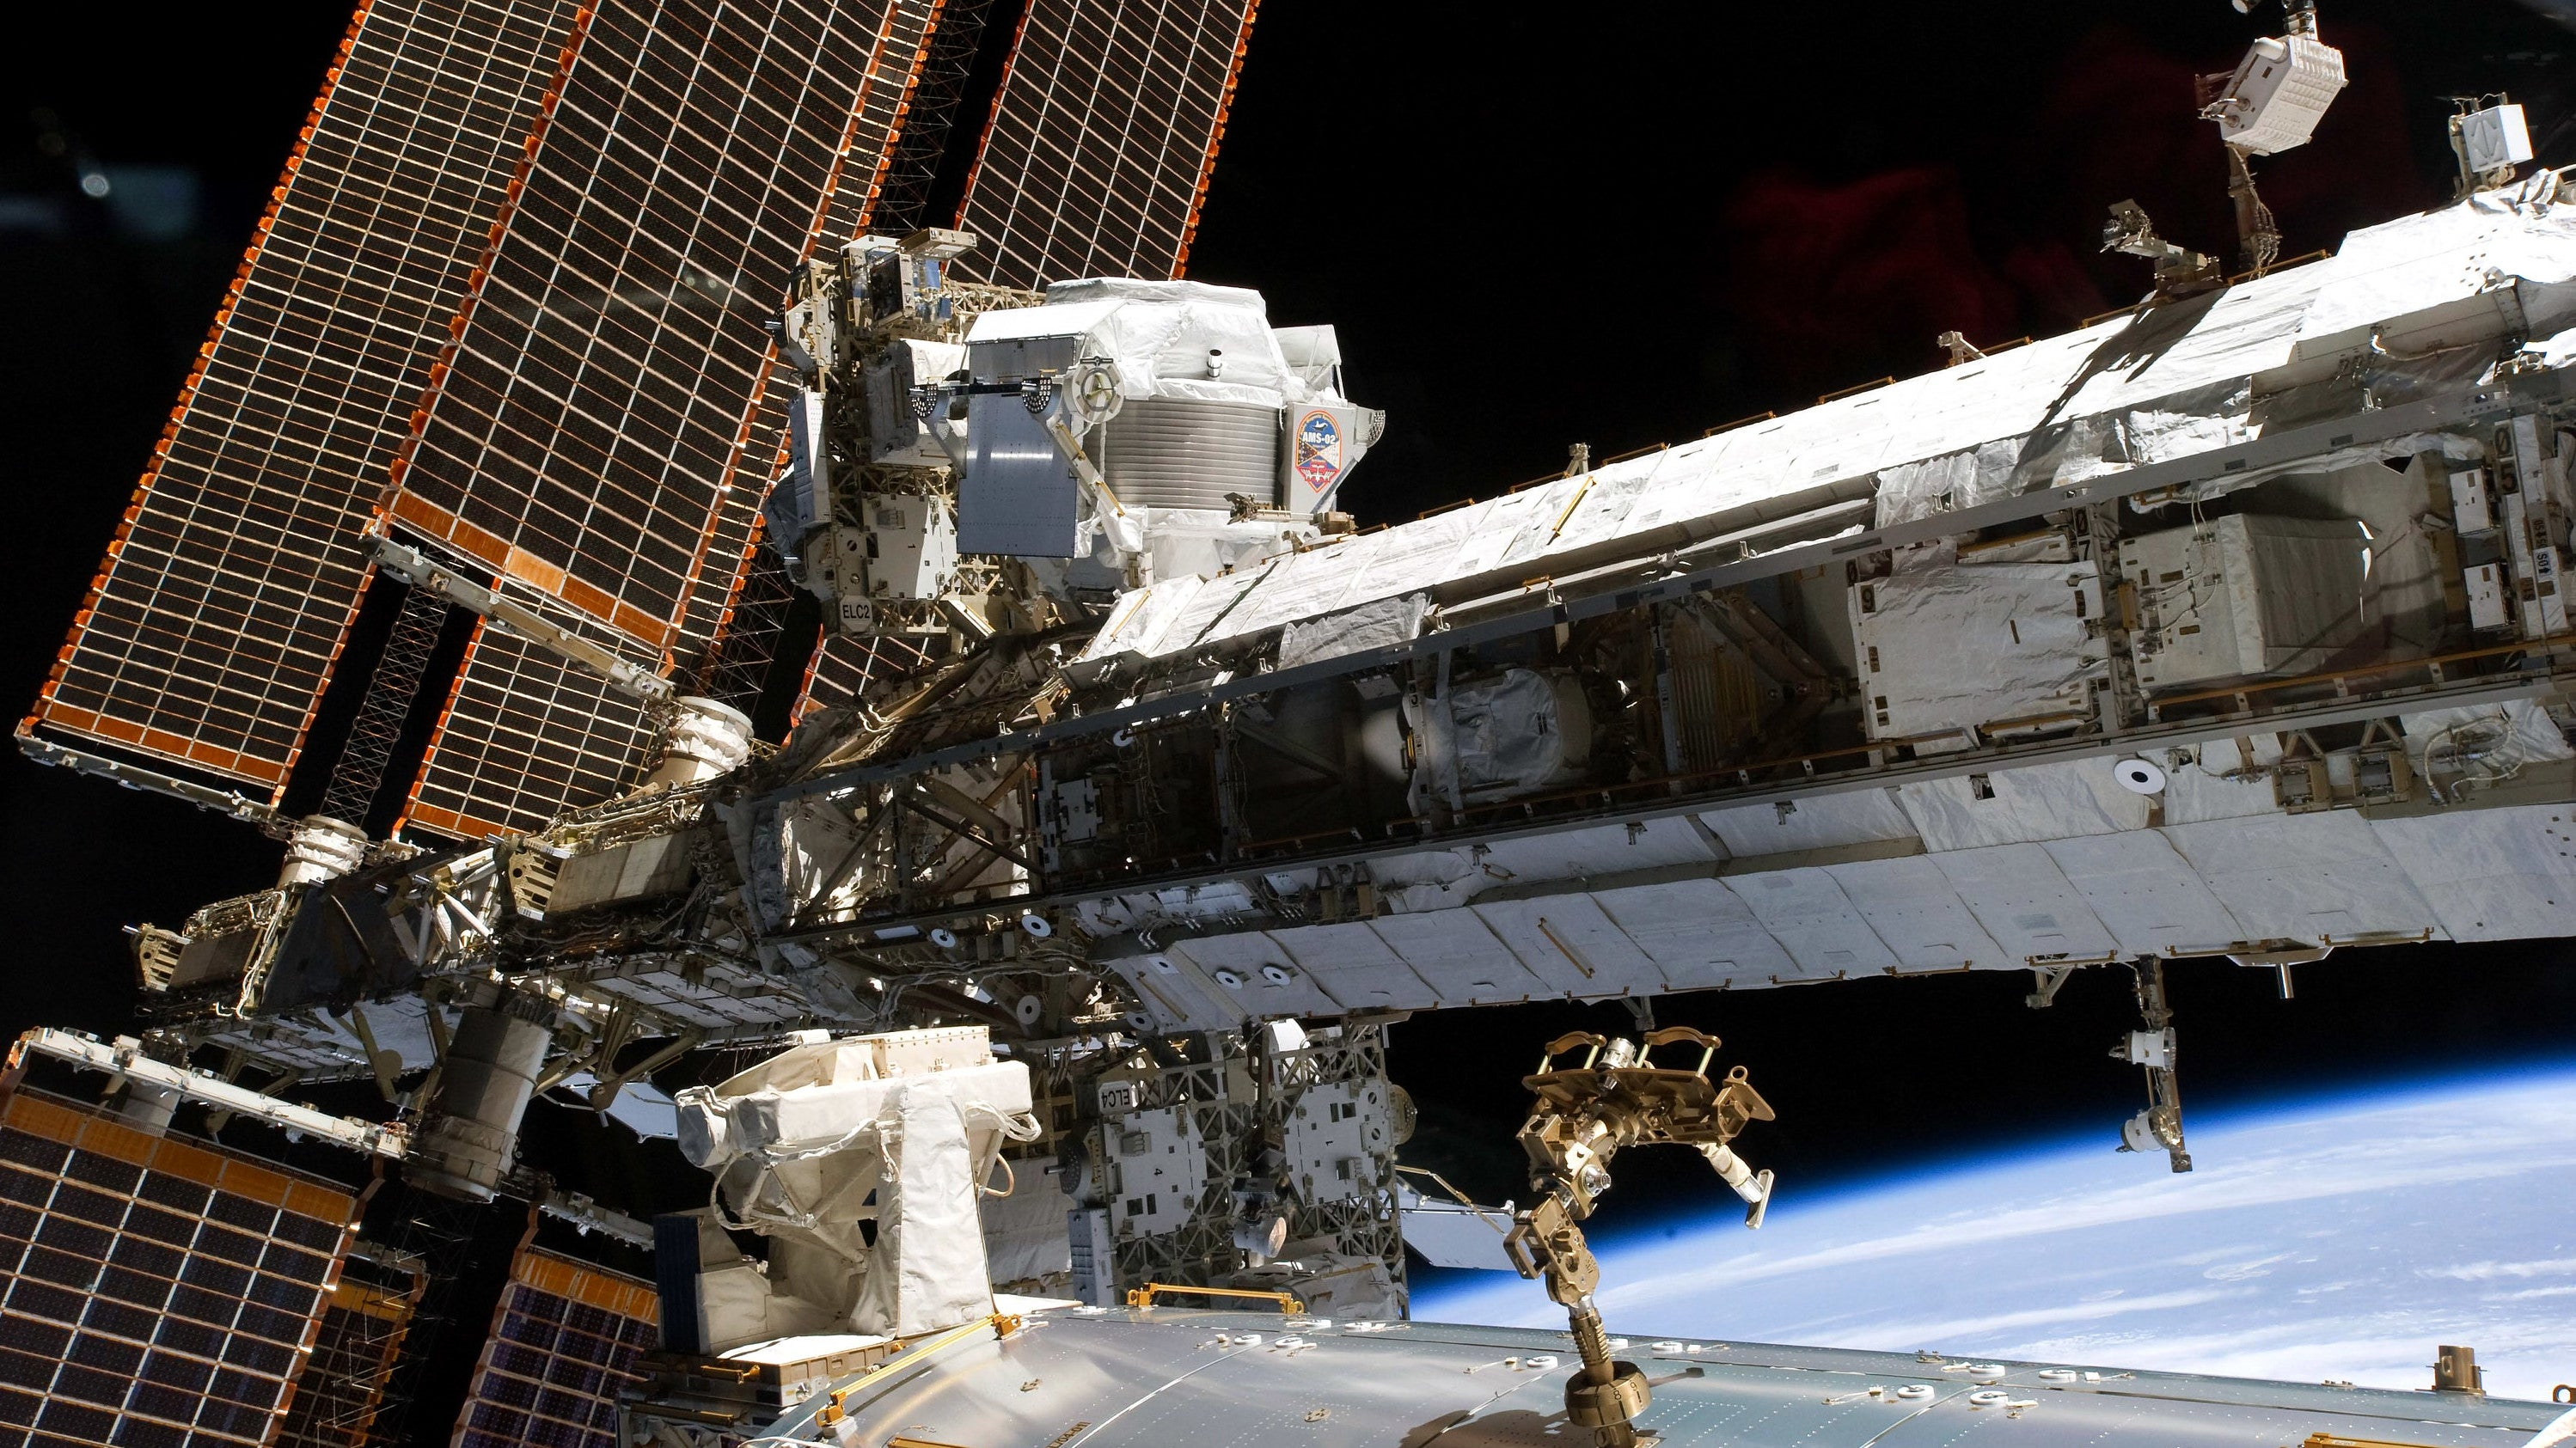 NASA Picks Axiom To Add A Garish Space Hotel To The ISS